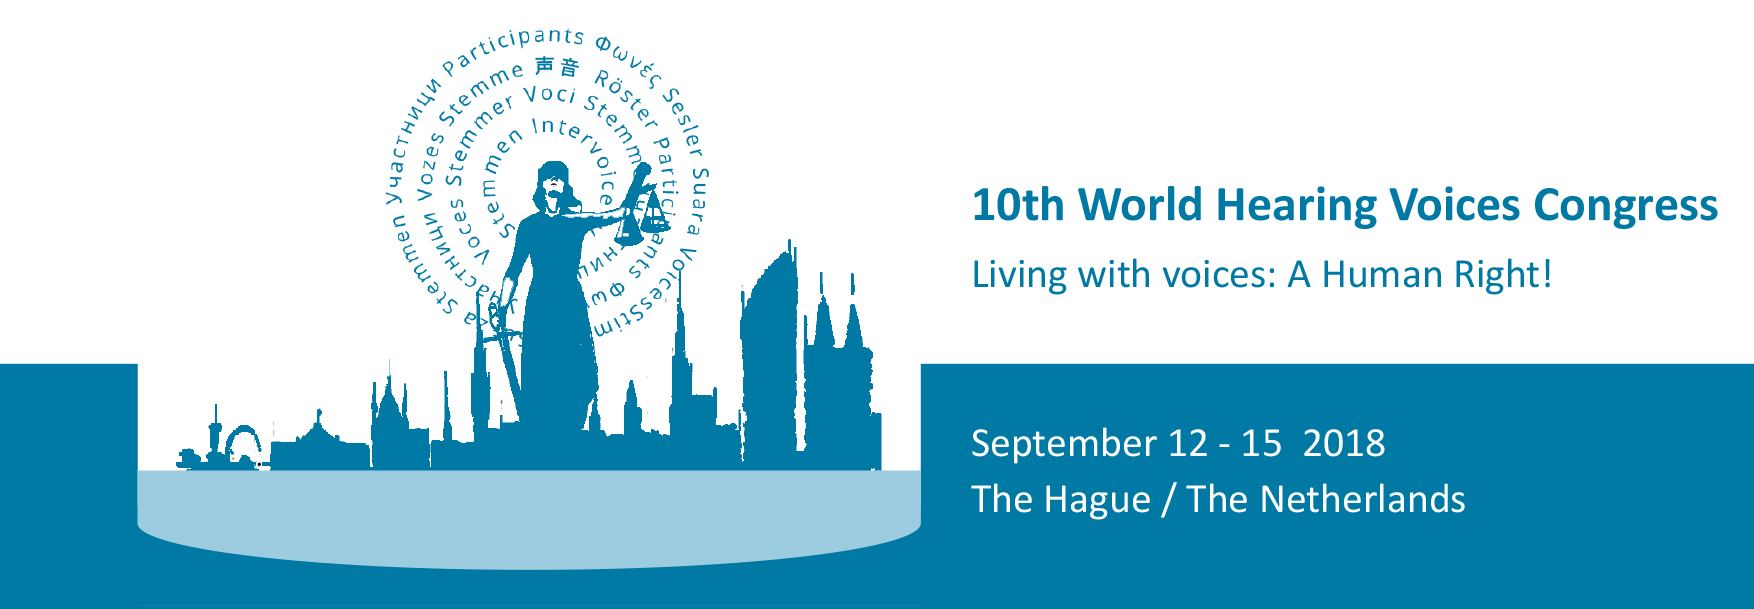 Hearing Voices Congress in The Hague, Netherlands